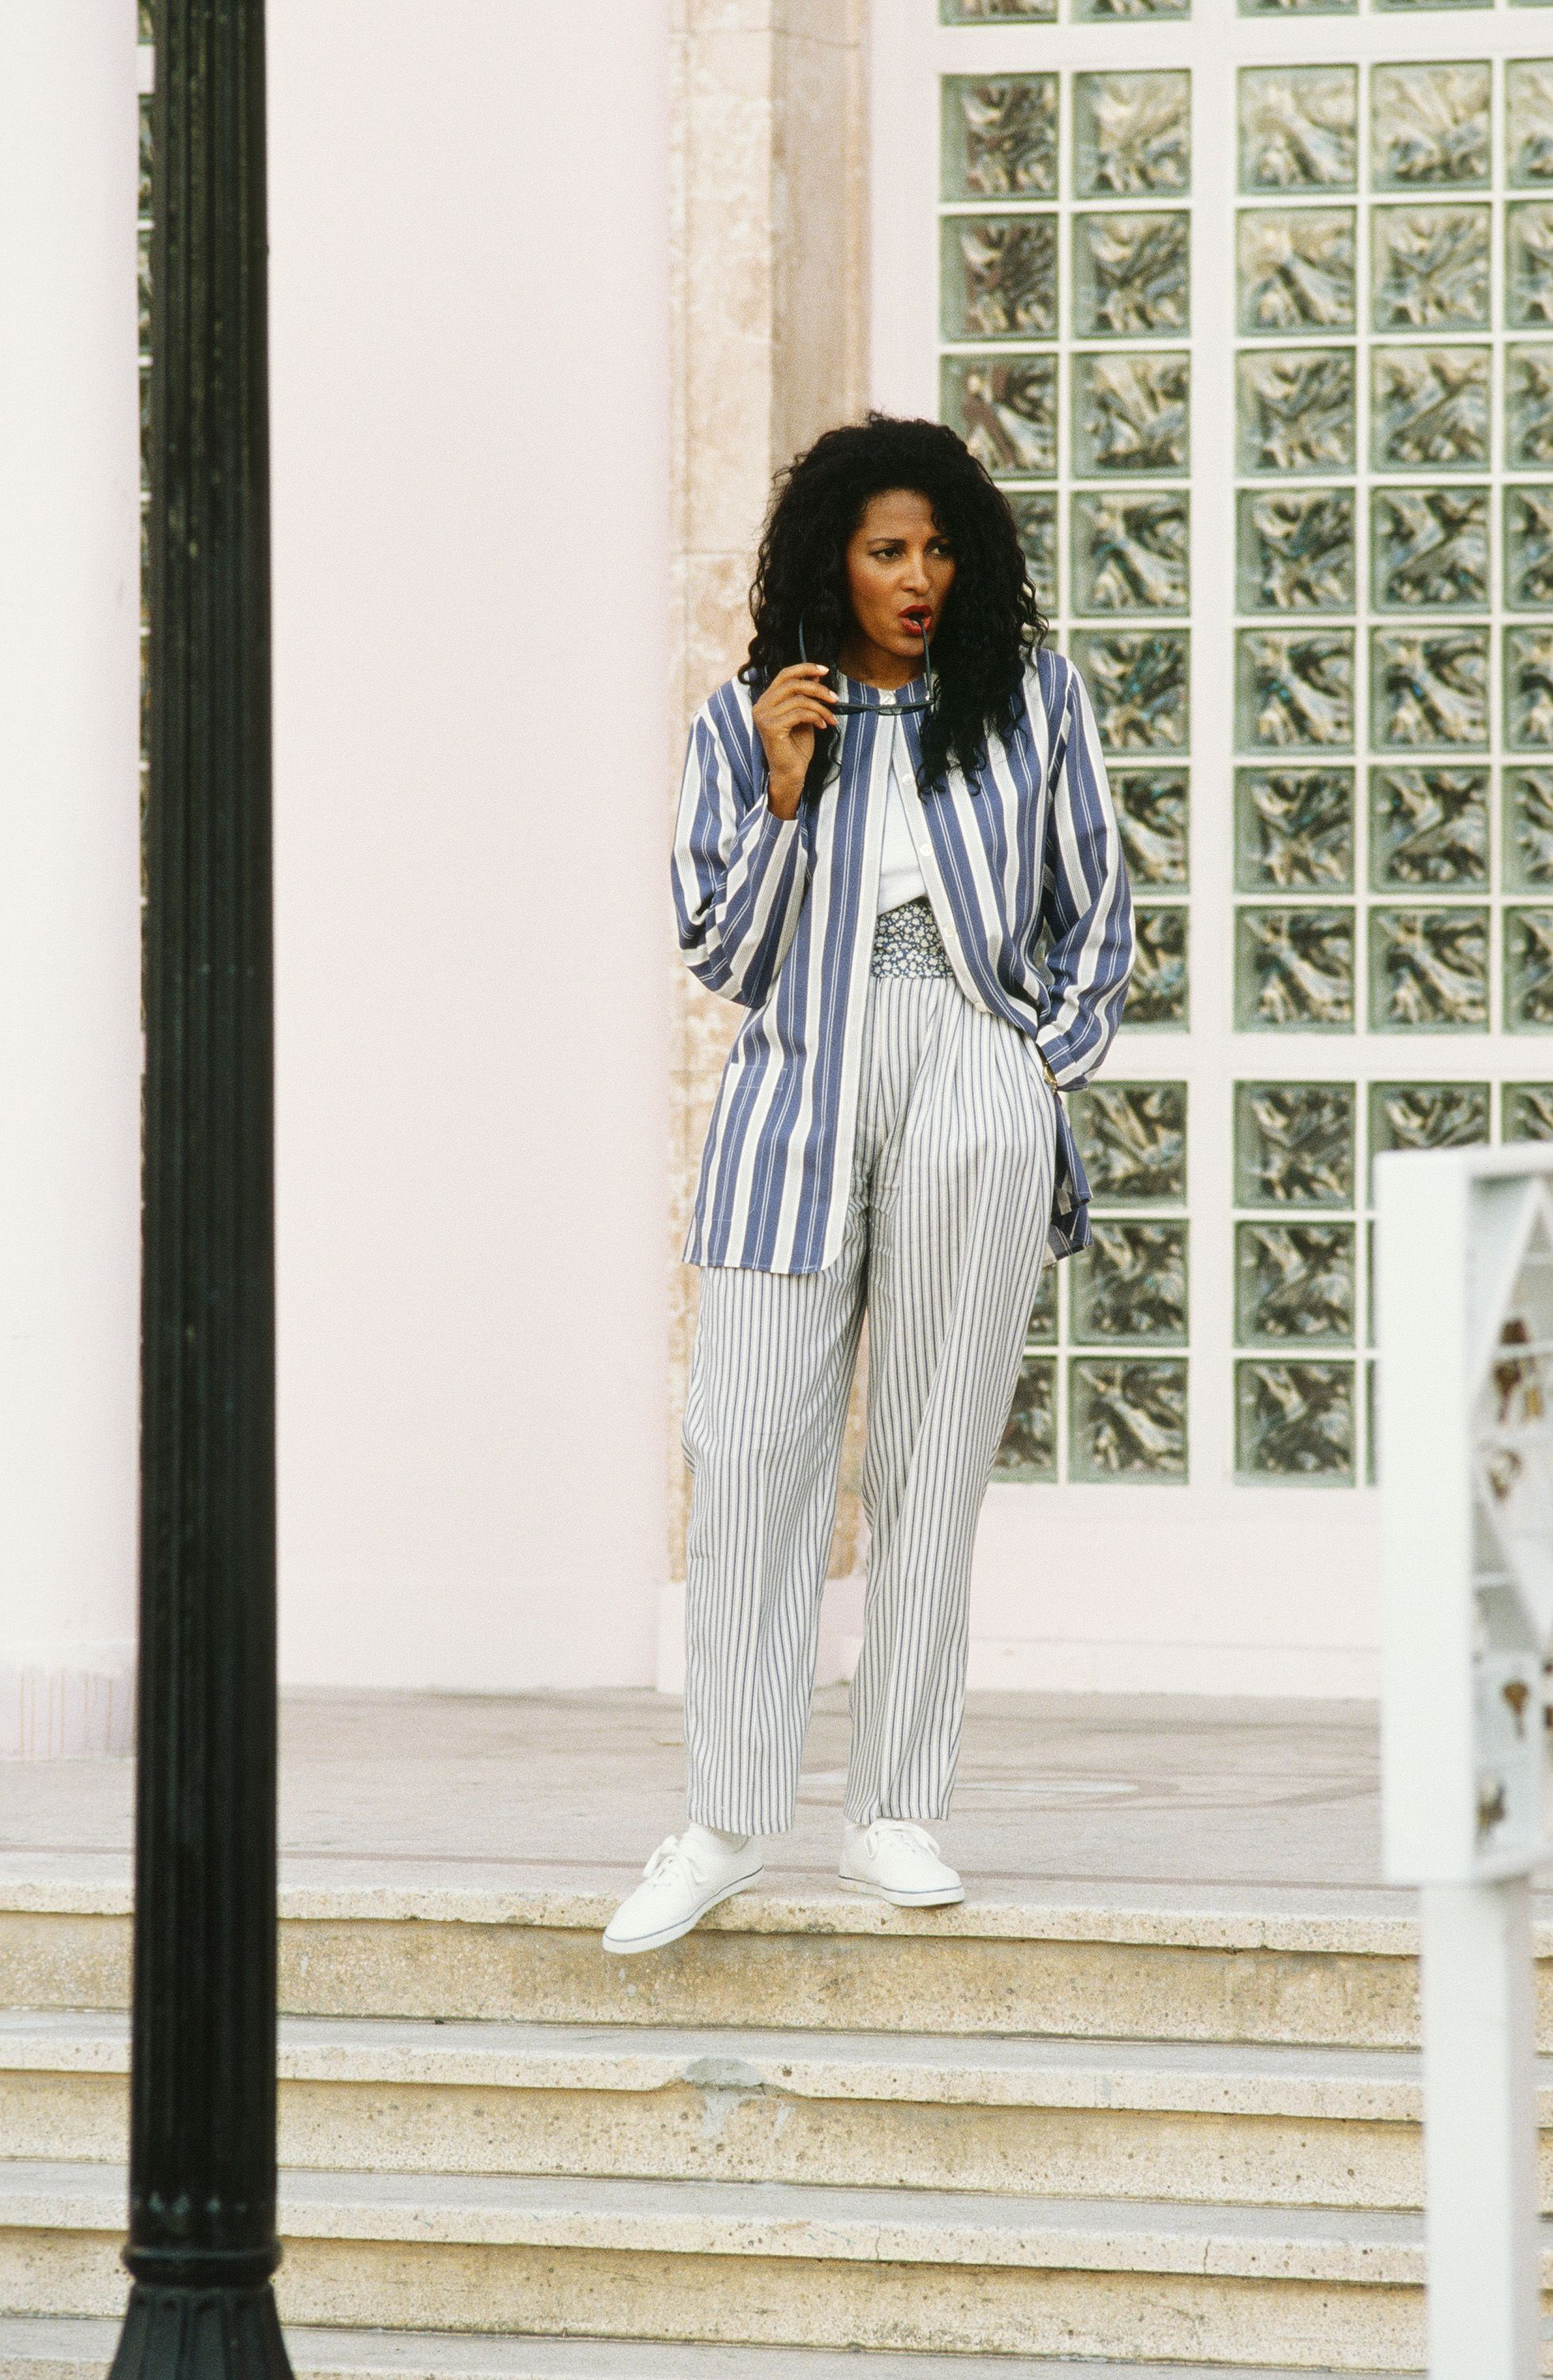 Revisiting the Iconic '70s Style of Pam Grier - Racked